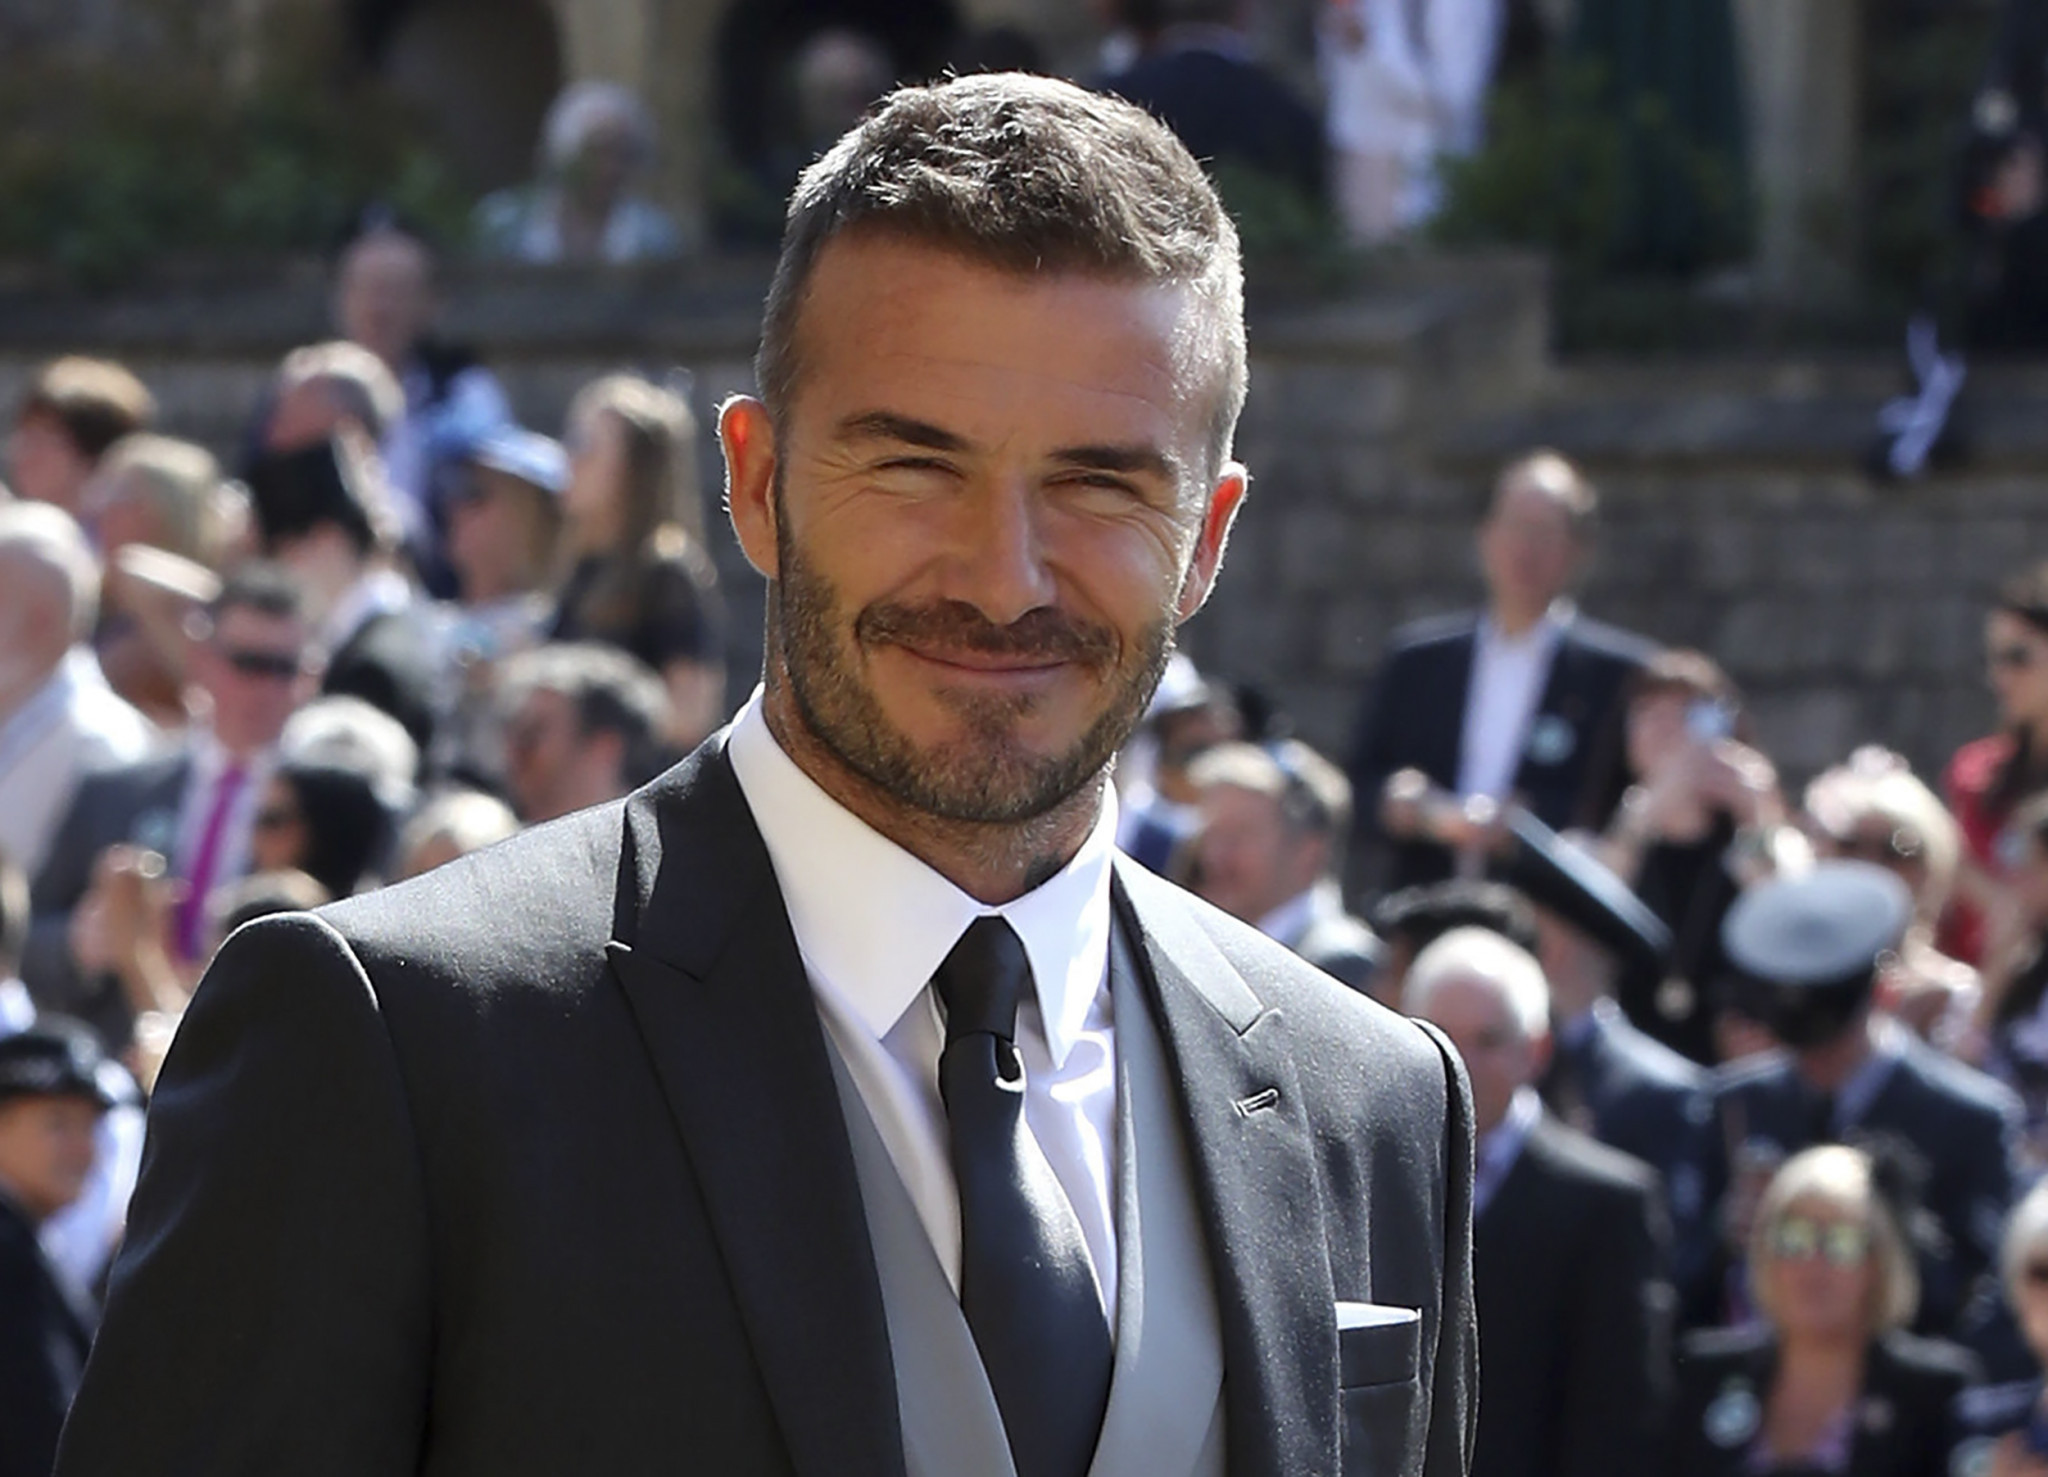 Beckham backs United 2026 World Cup bid as vote approaches